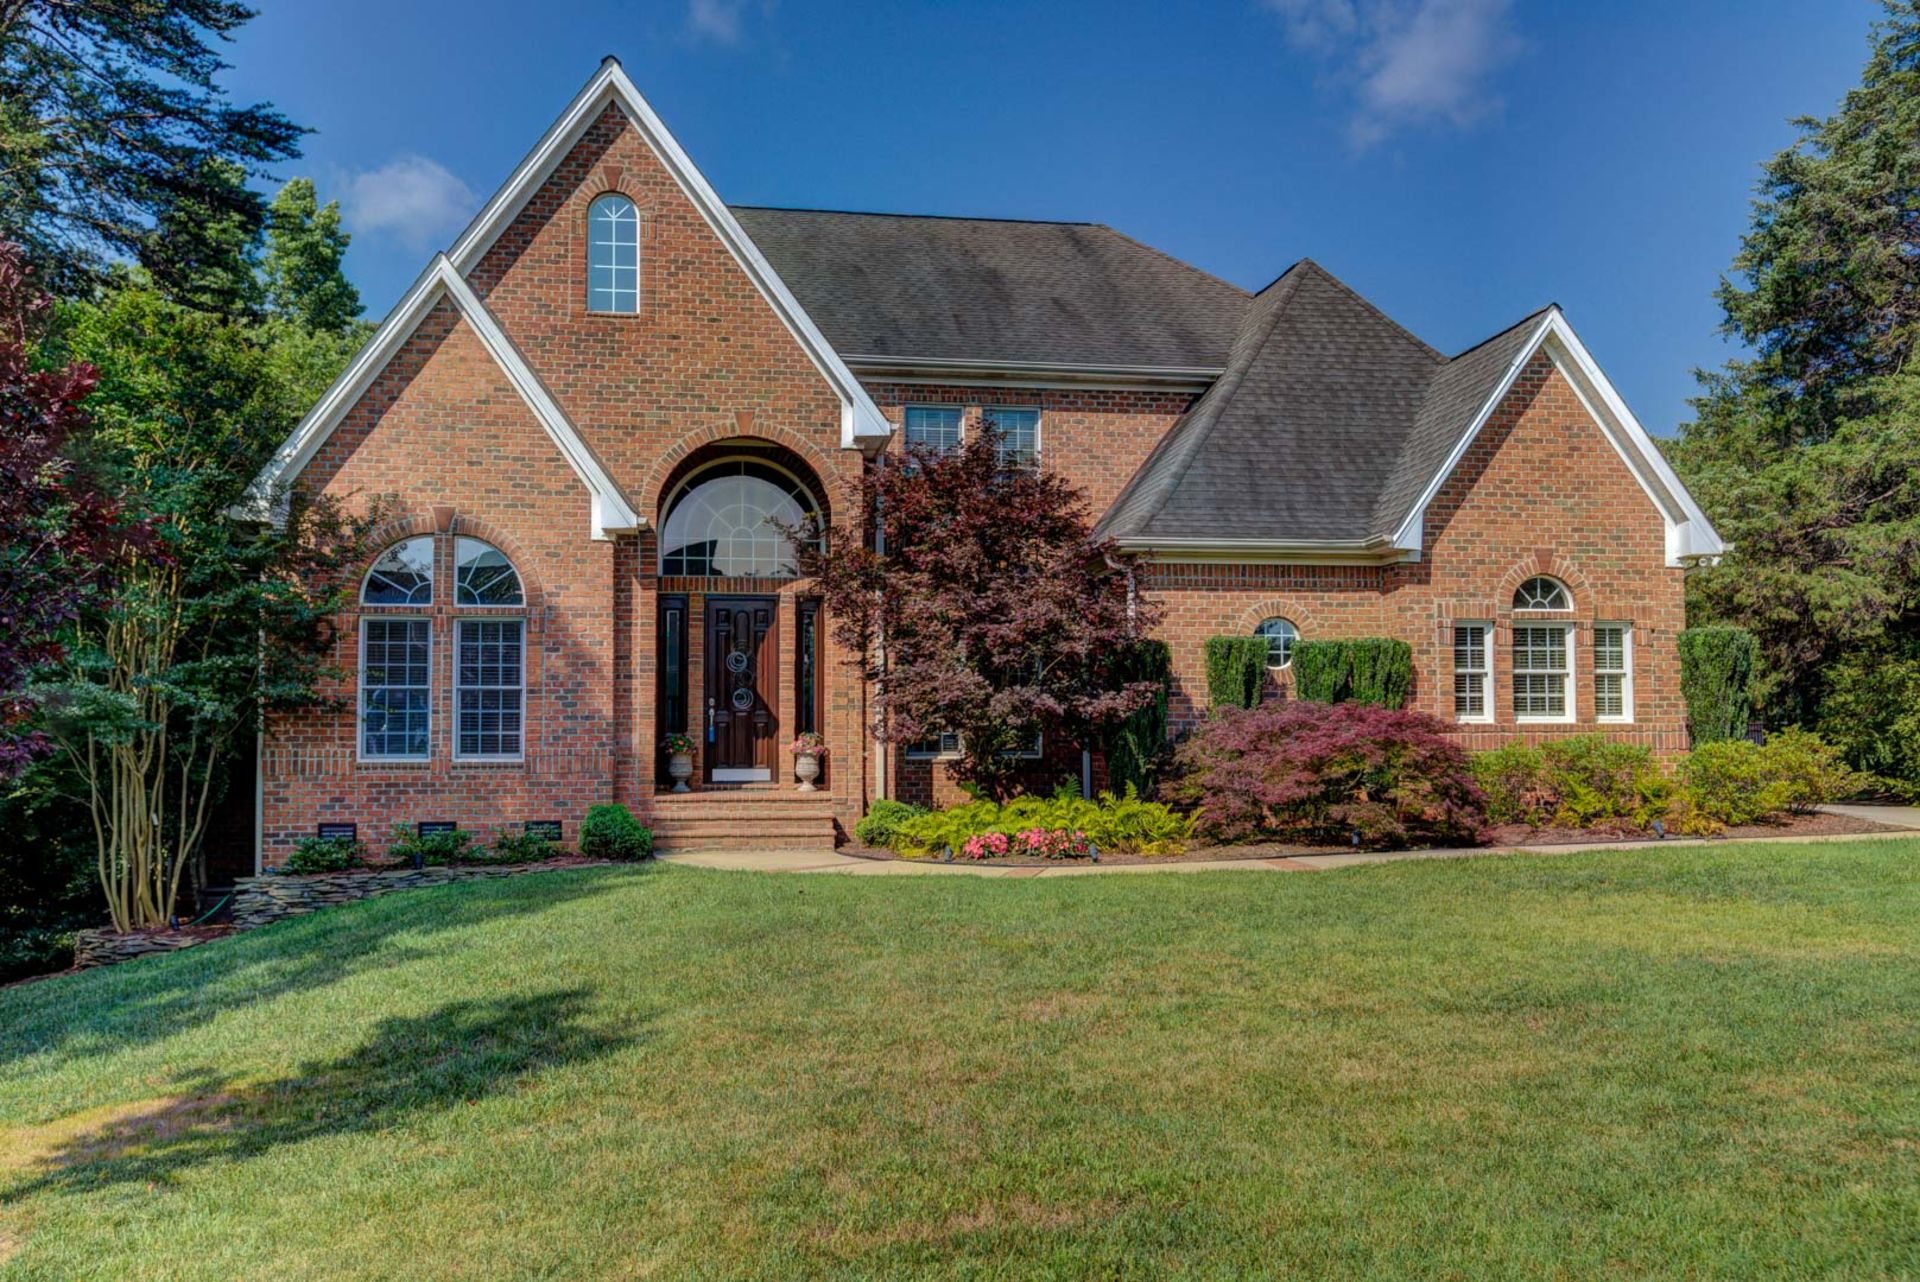 OPEN HOUSE this Saturday in Staffordshire Estates!